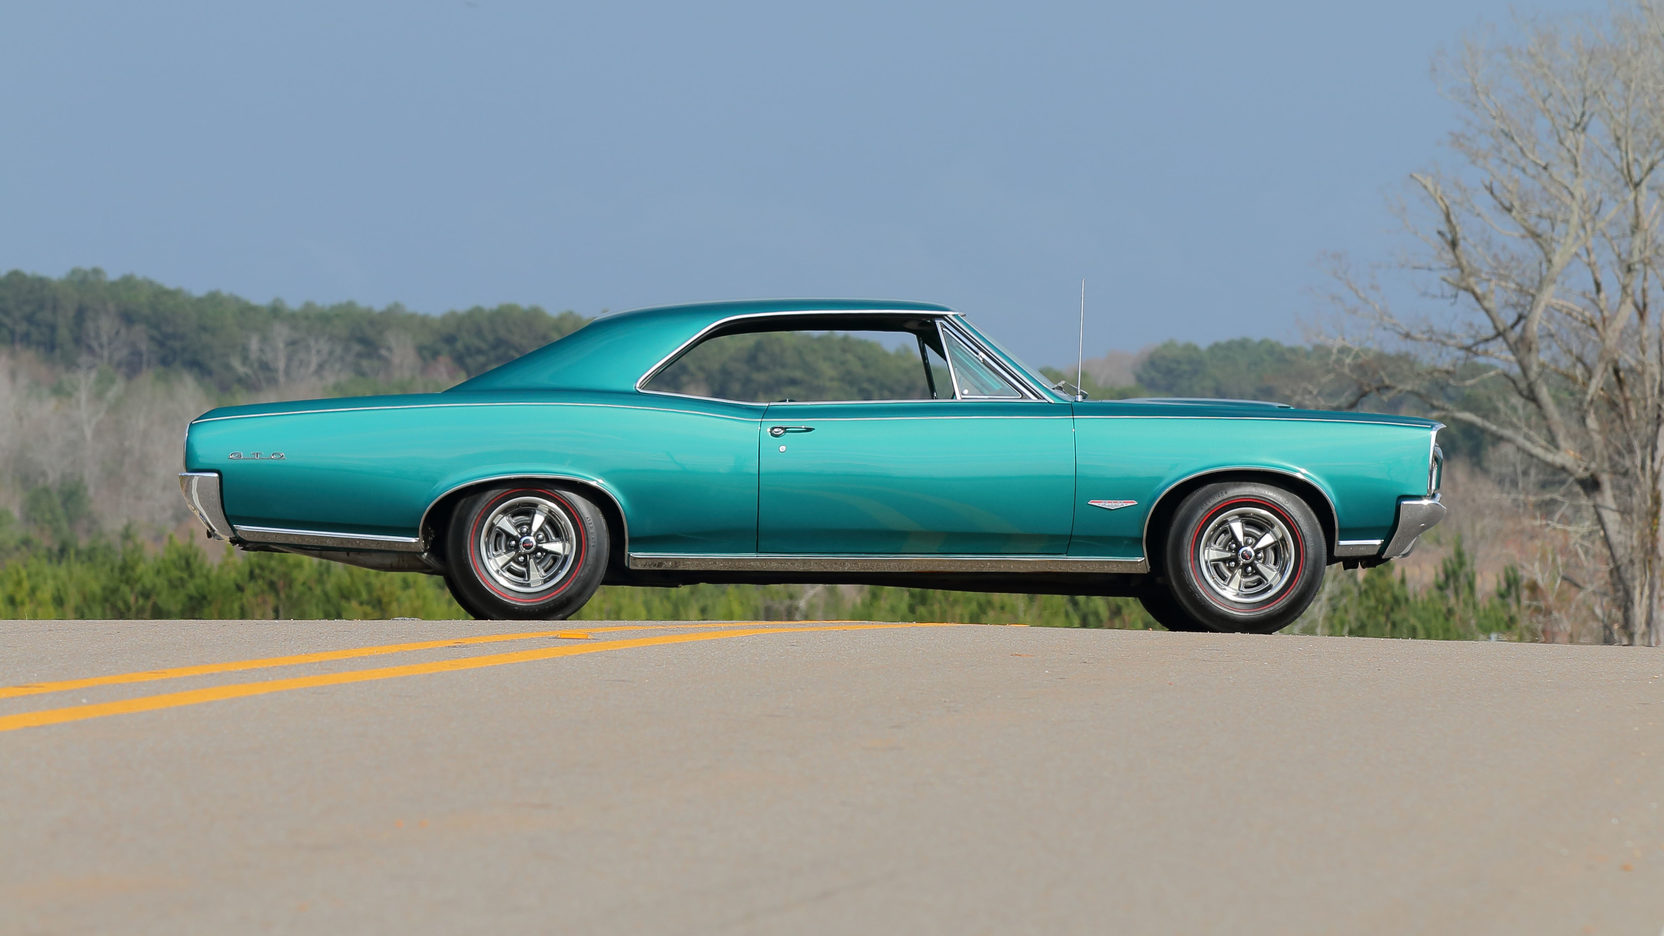 1966 Pontiac GTO side